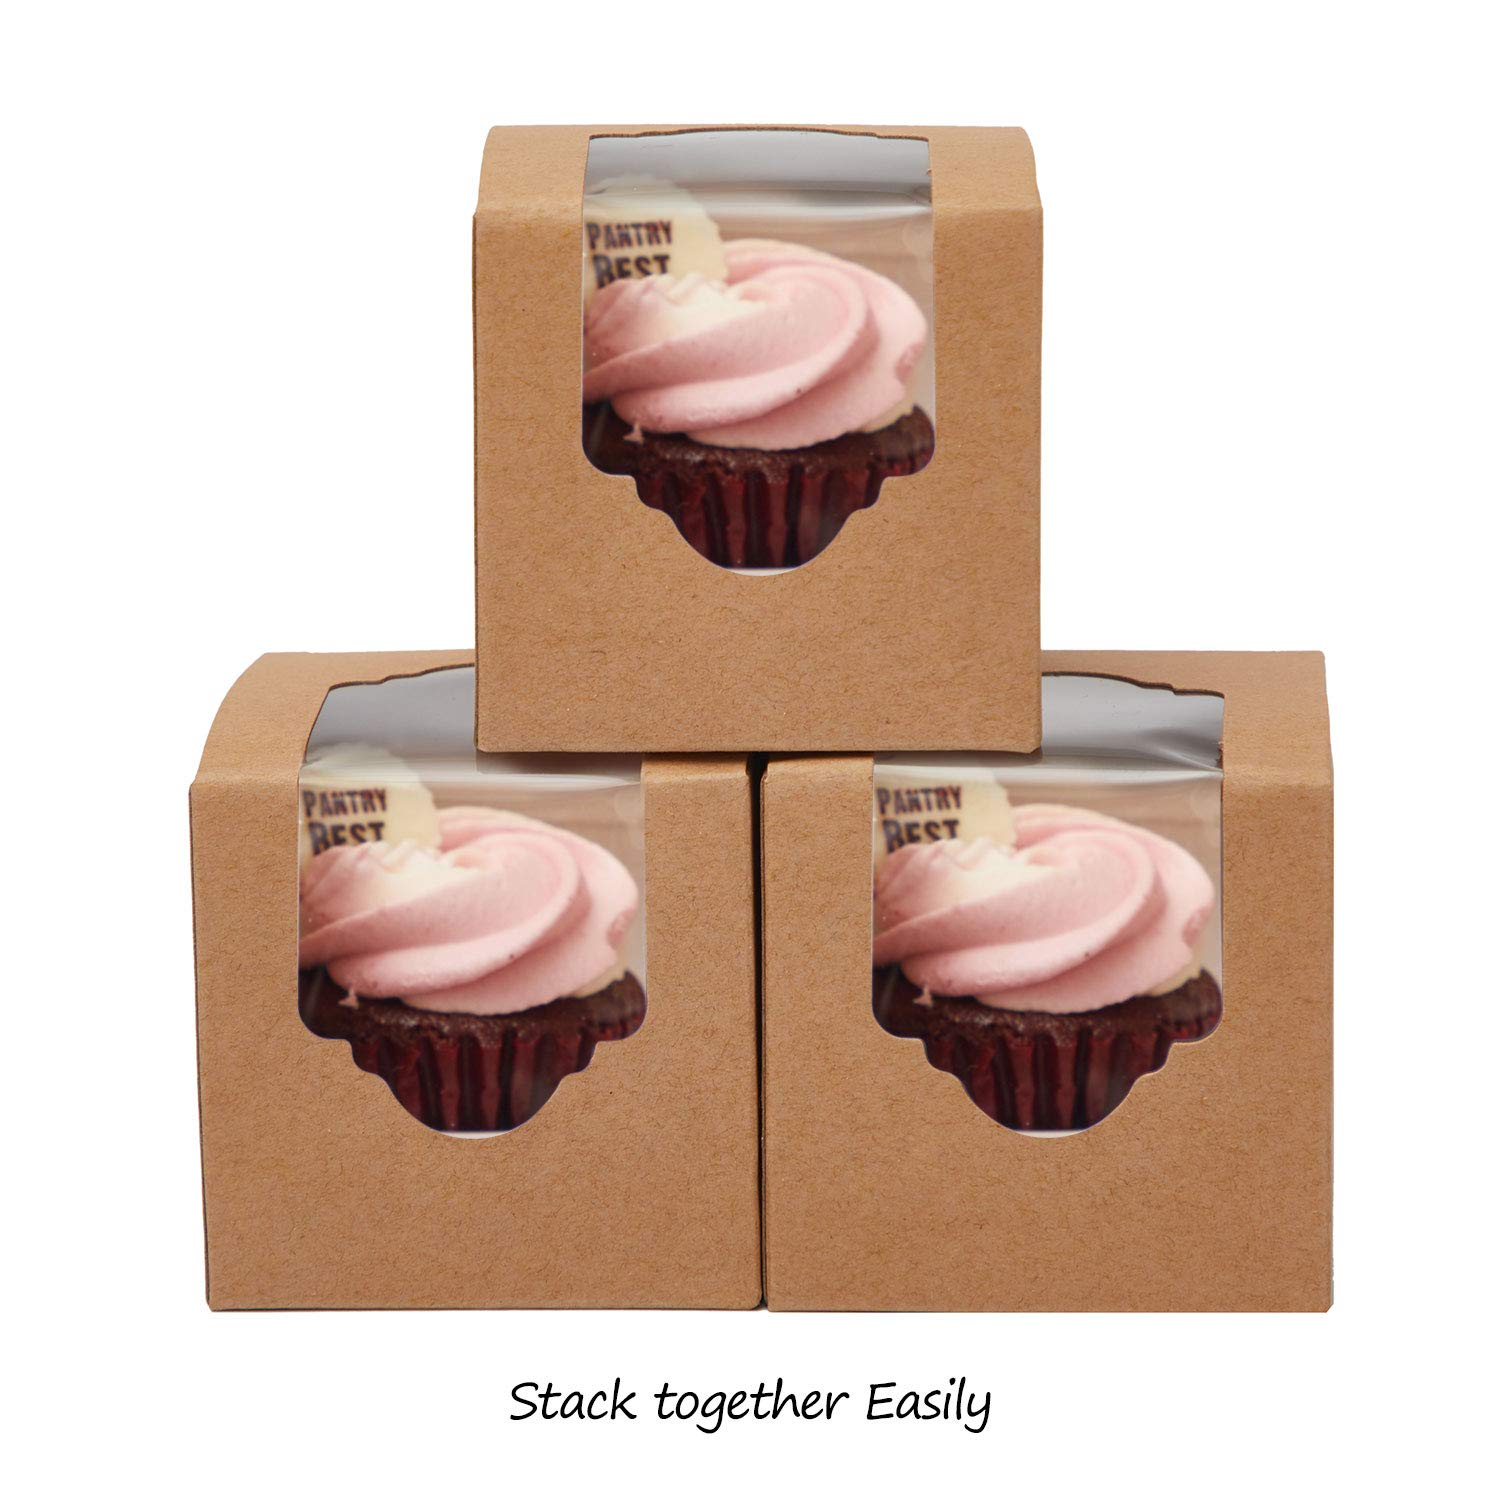 Yotruth Rustic Brown Mini Cupcake boxes Individual Easy Pop Up for Wedding Favors with Insert 50 Pack